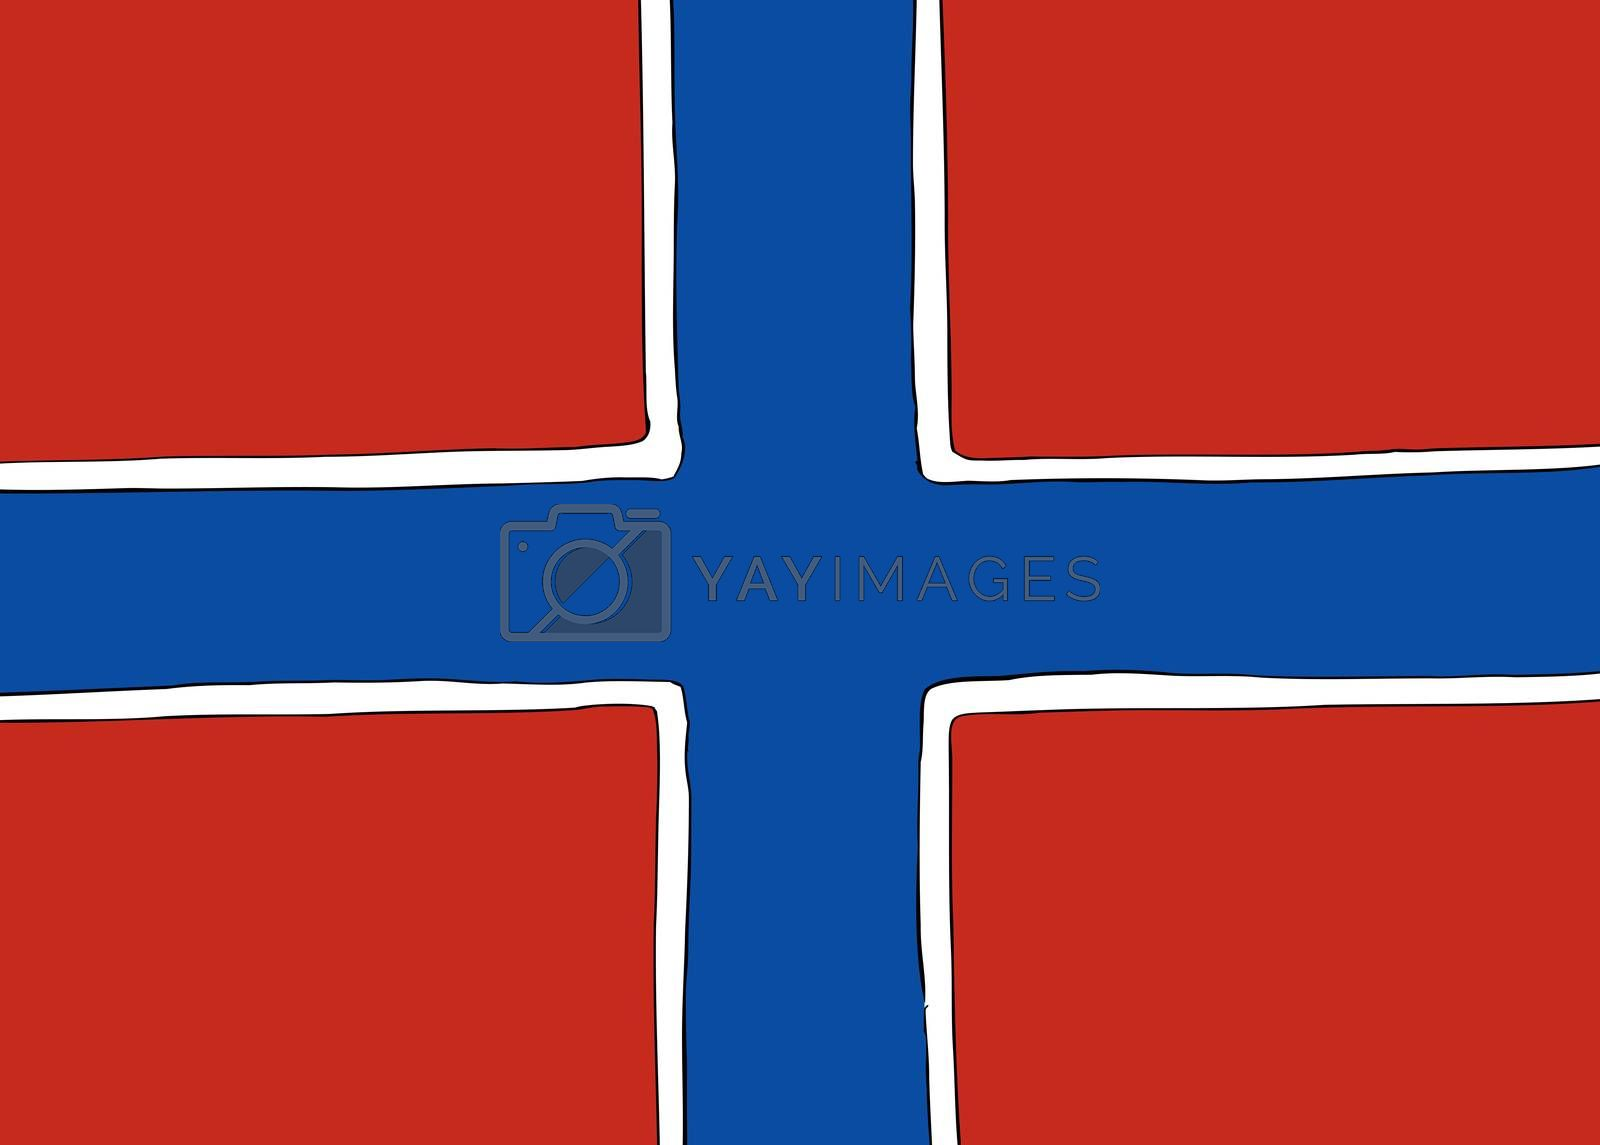 Symmetrical centered version of a Nordic Cross flag representing Norway